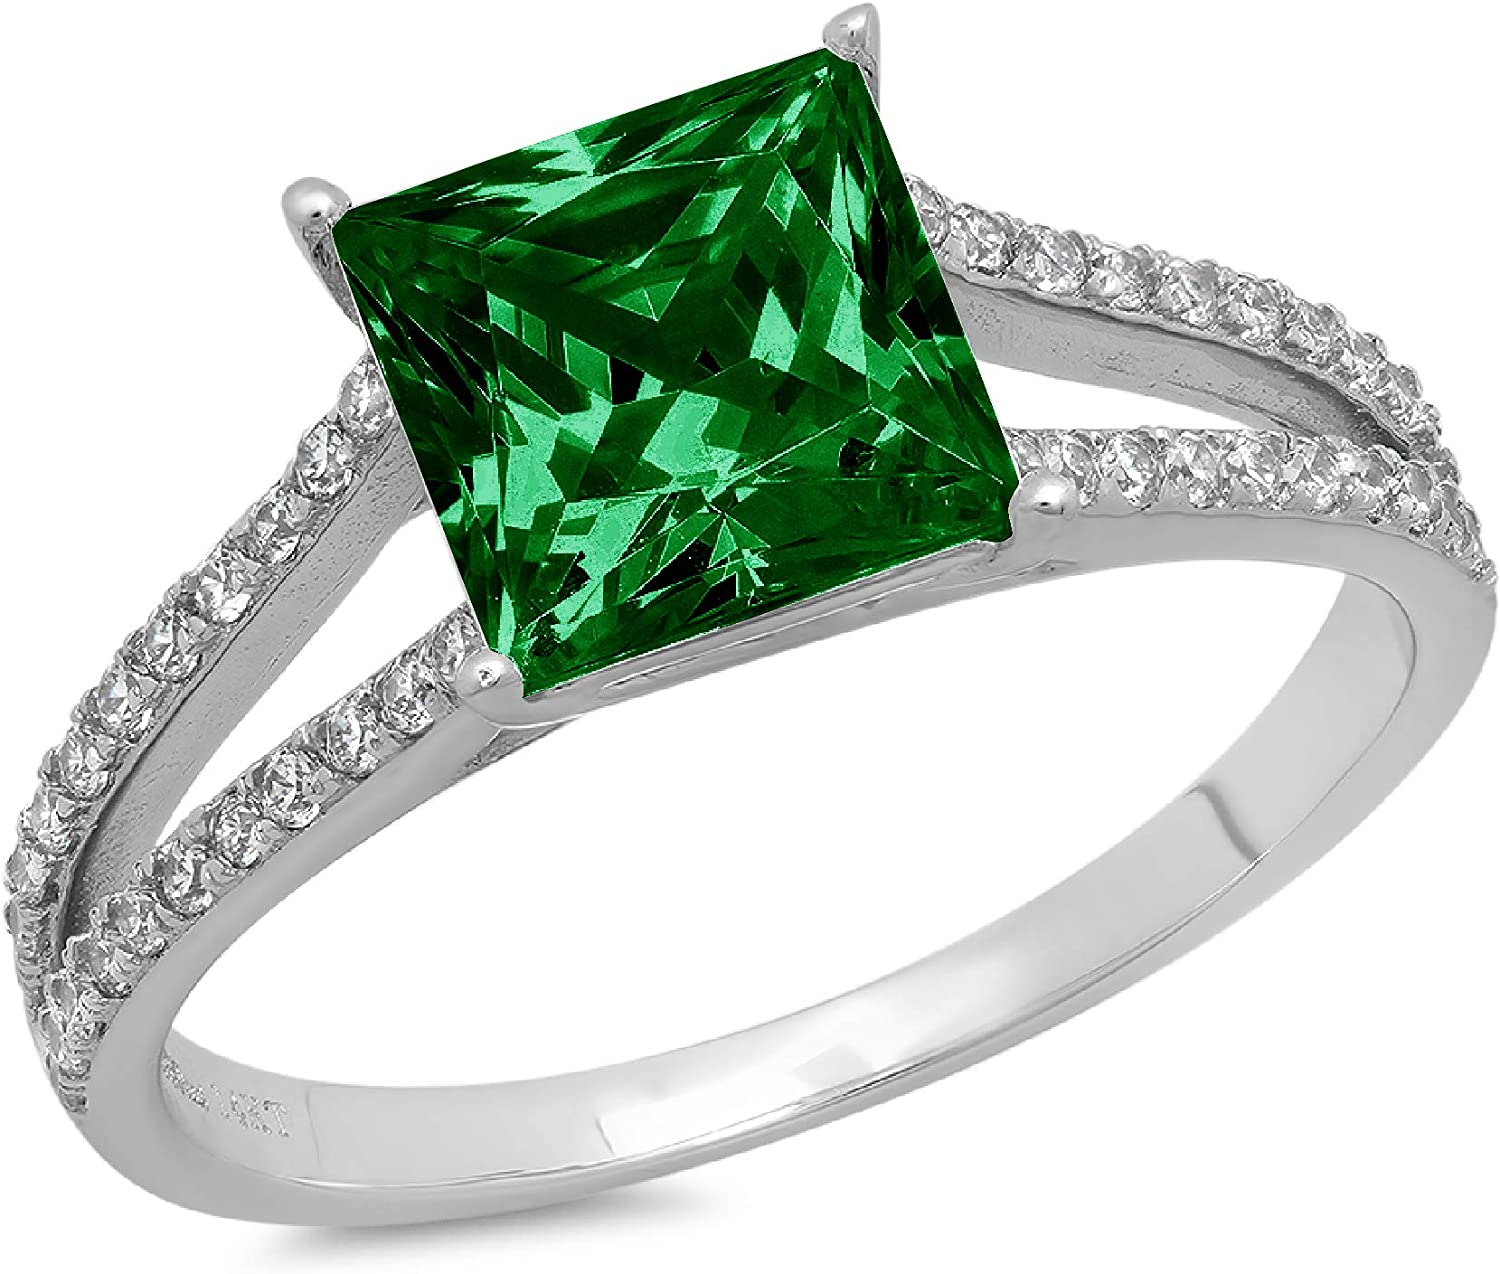 2.39ct Princess Cut Solitaire with shank S Accent Finally Excellence popular brand Flawless split